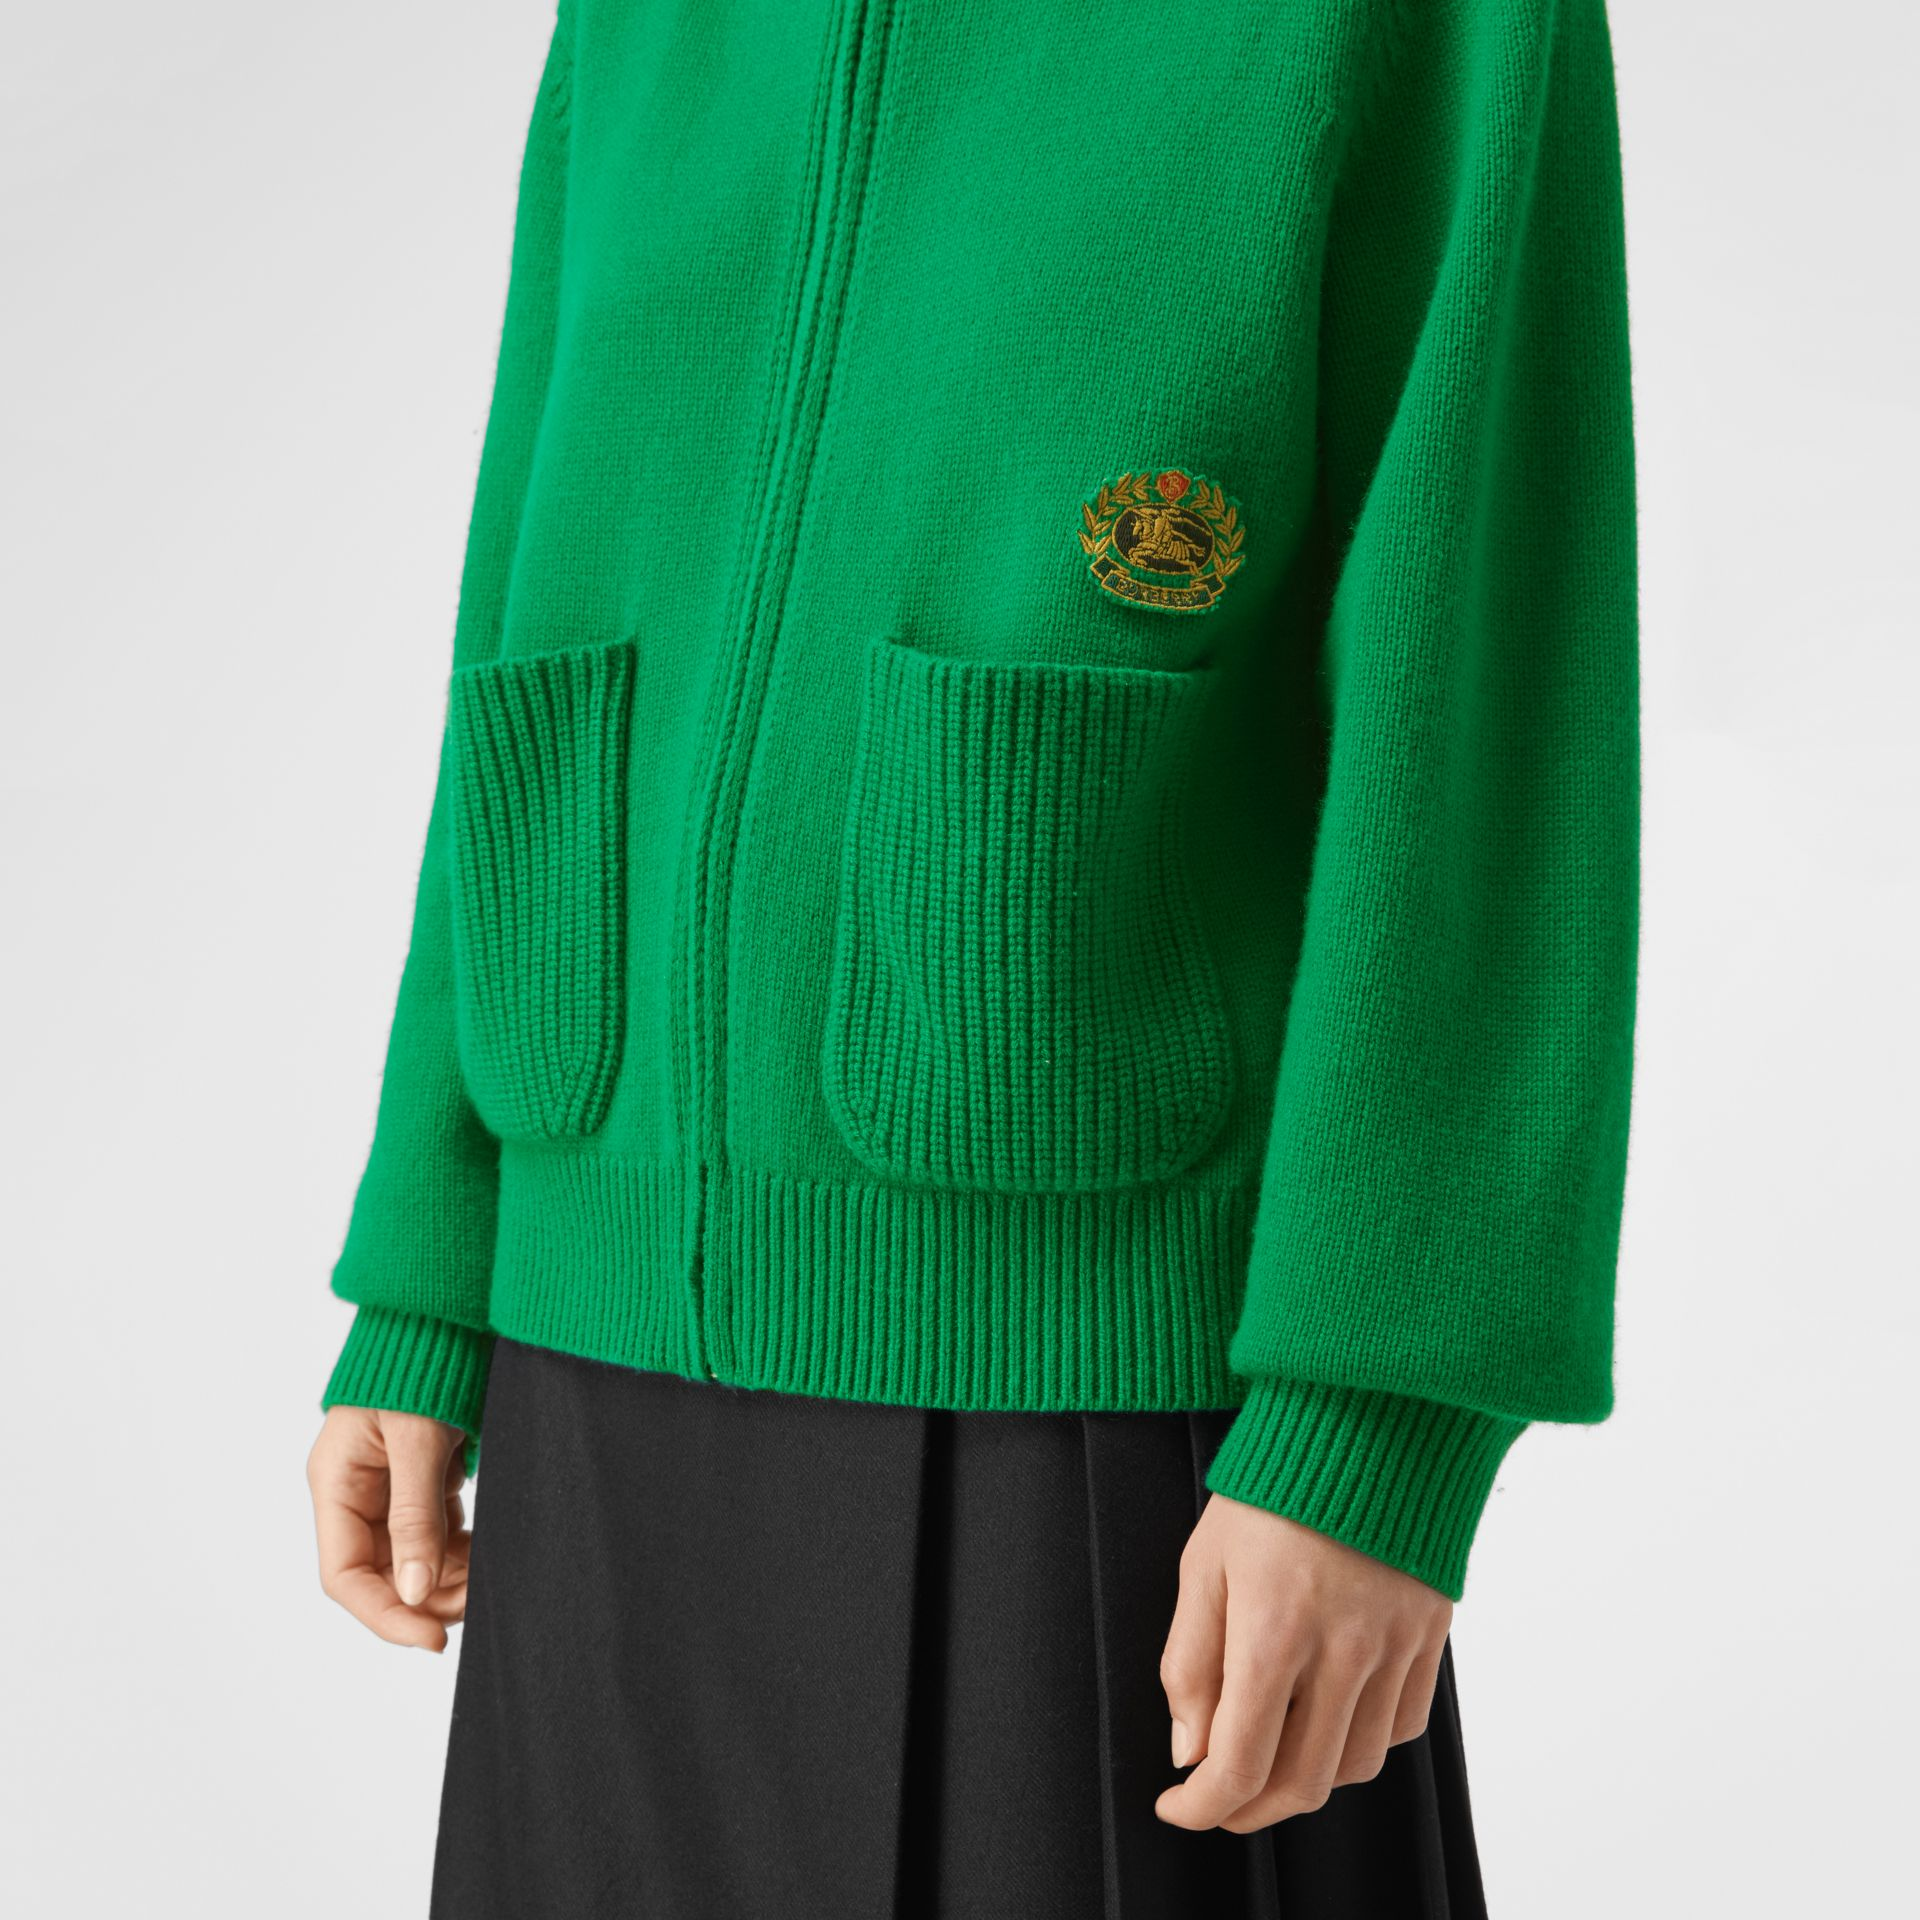 Embroidered Archive Logo Cashmere Hooded Top in Vibrant Green - Women | Burberry - gallery image 1